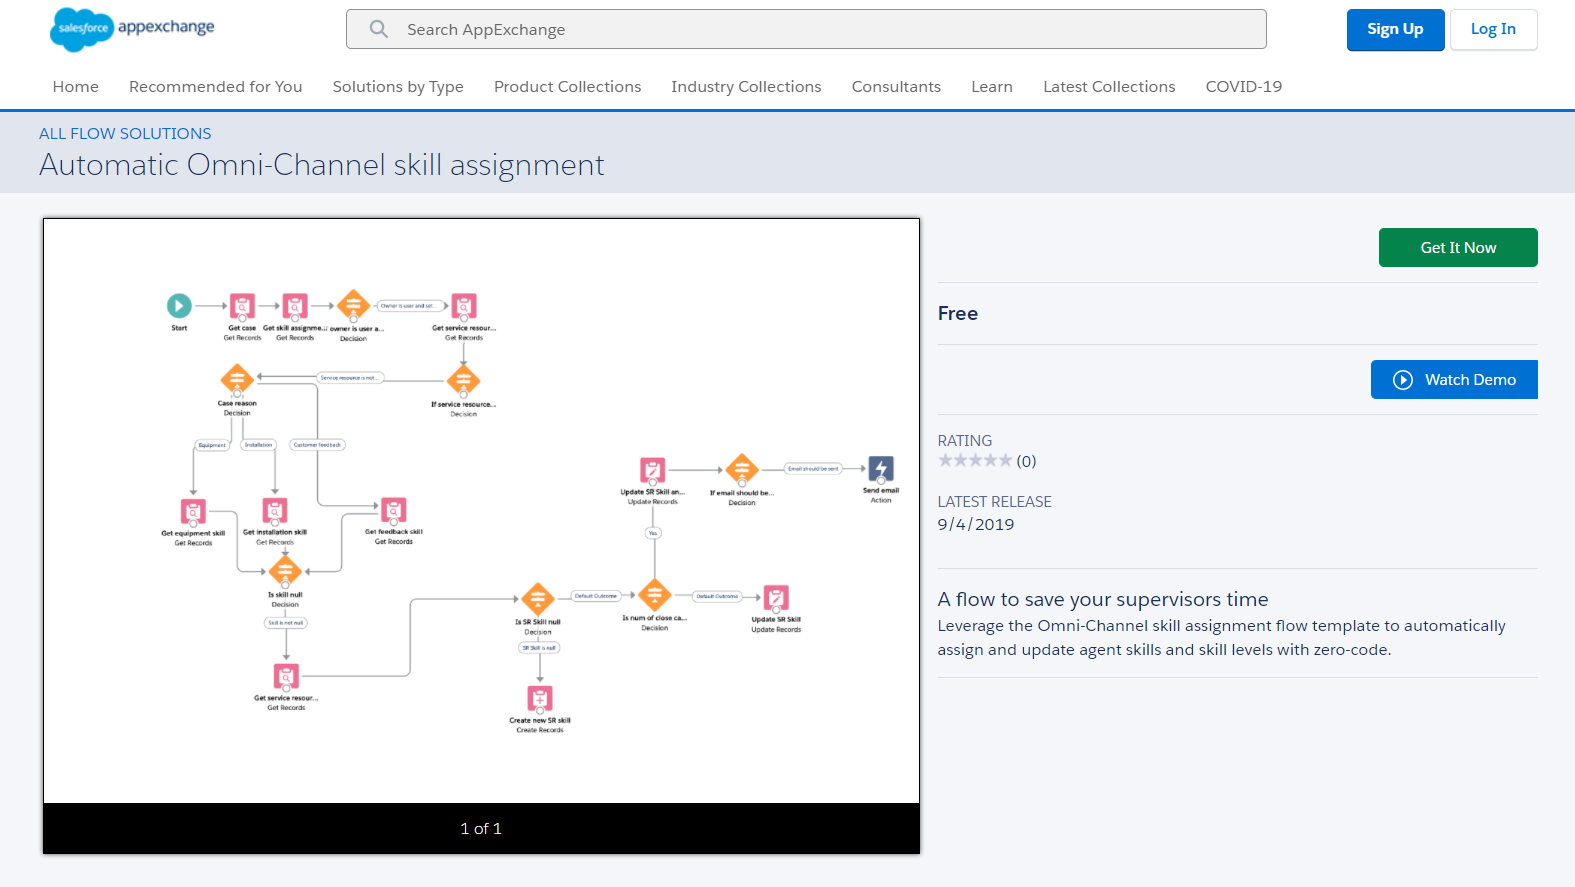 Automatic Omni-Channel Skill Assignment Flow From AppExchange